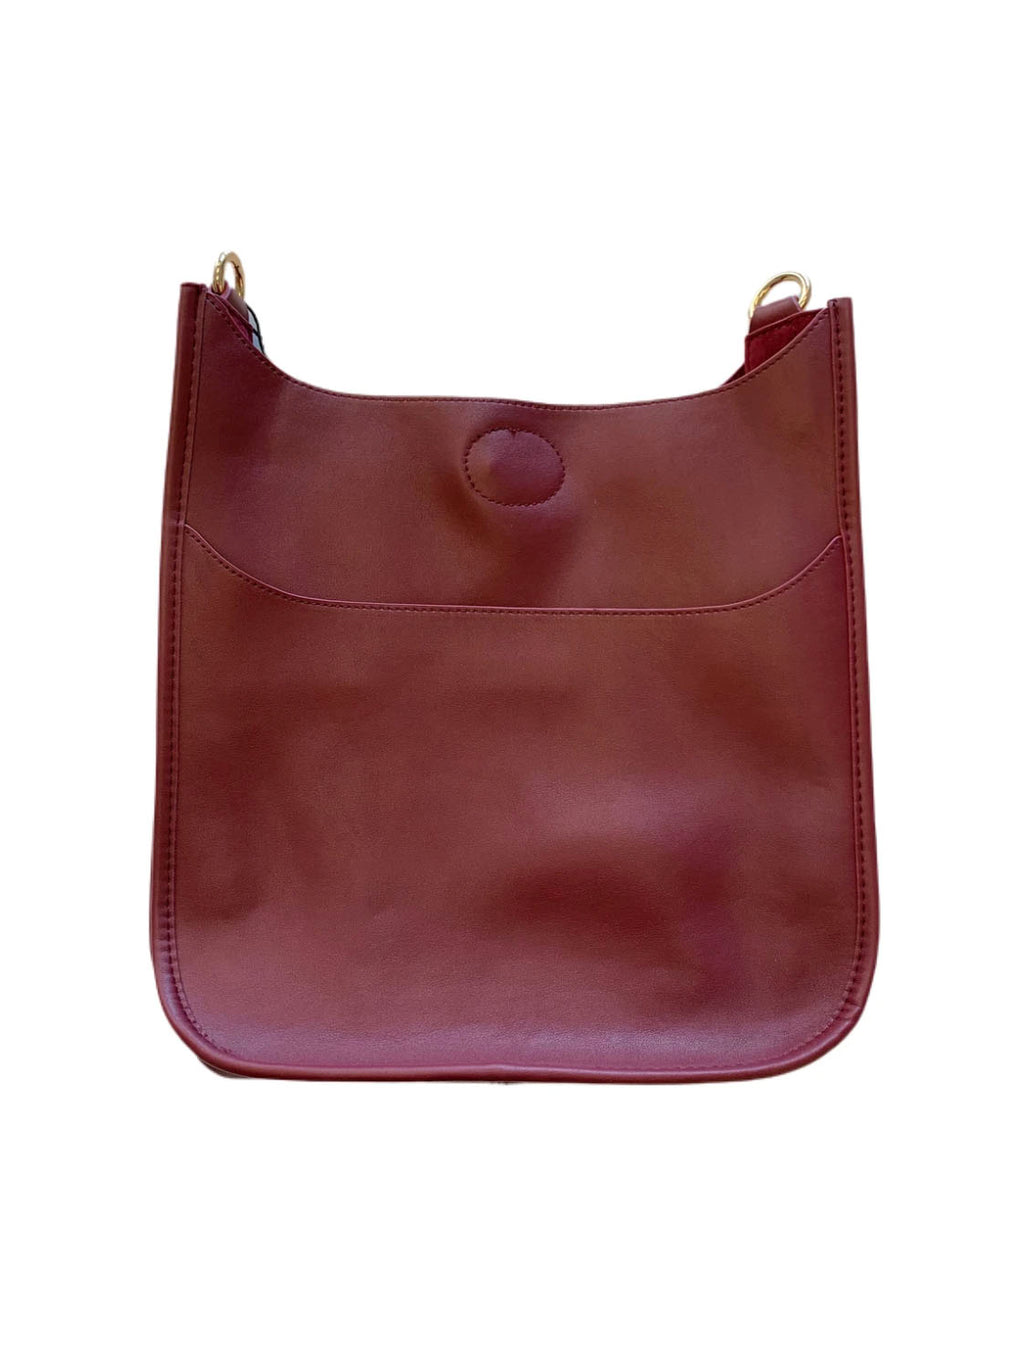 Ahdorned Faux Leather Large Messenger Bag in Burgundy- No Strap!